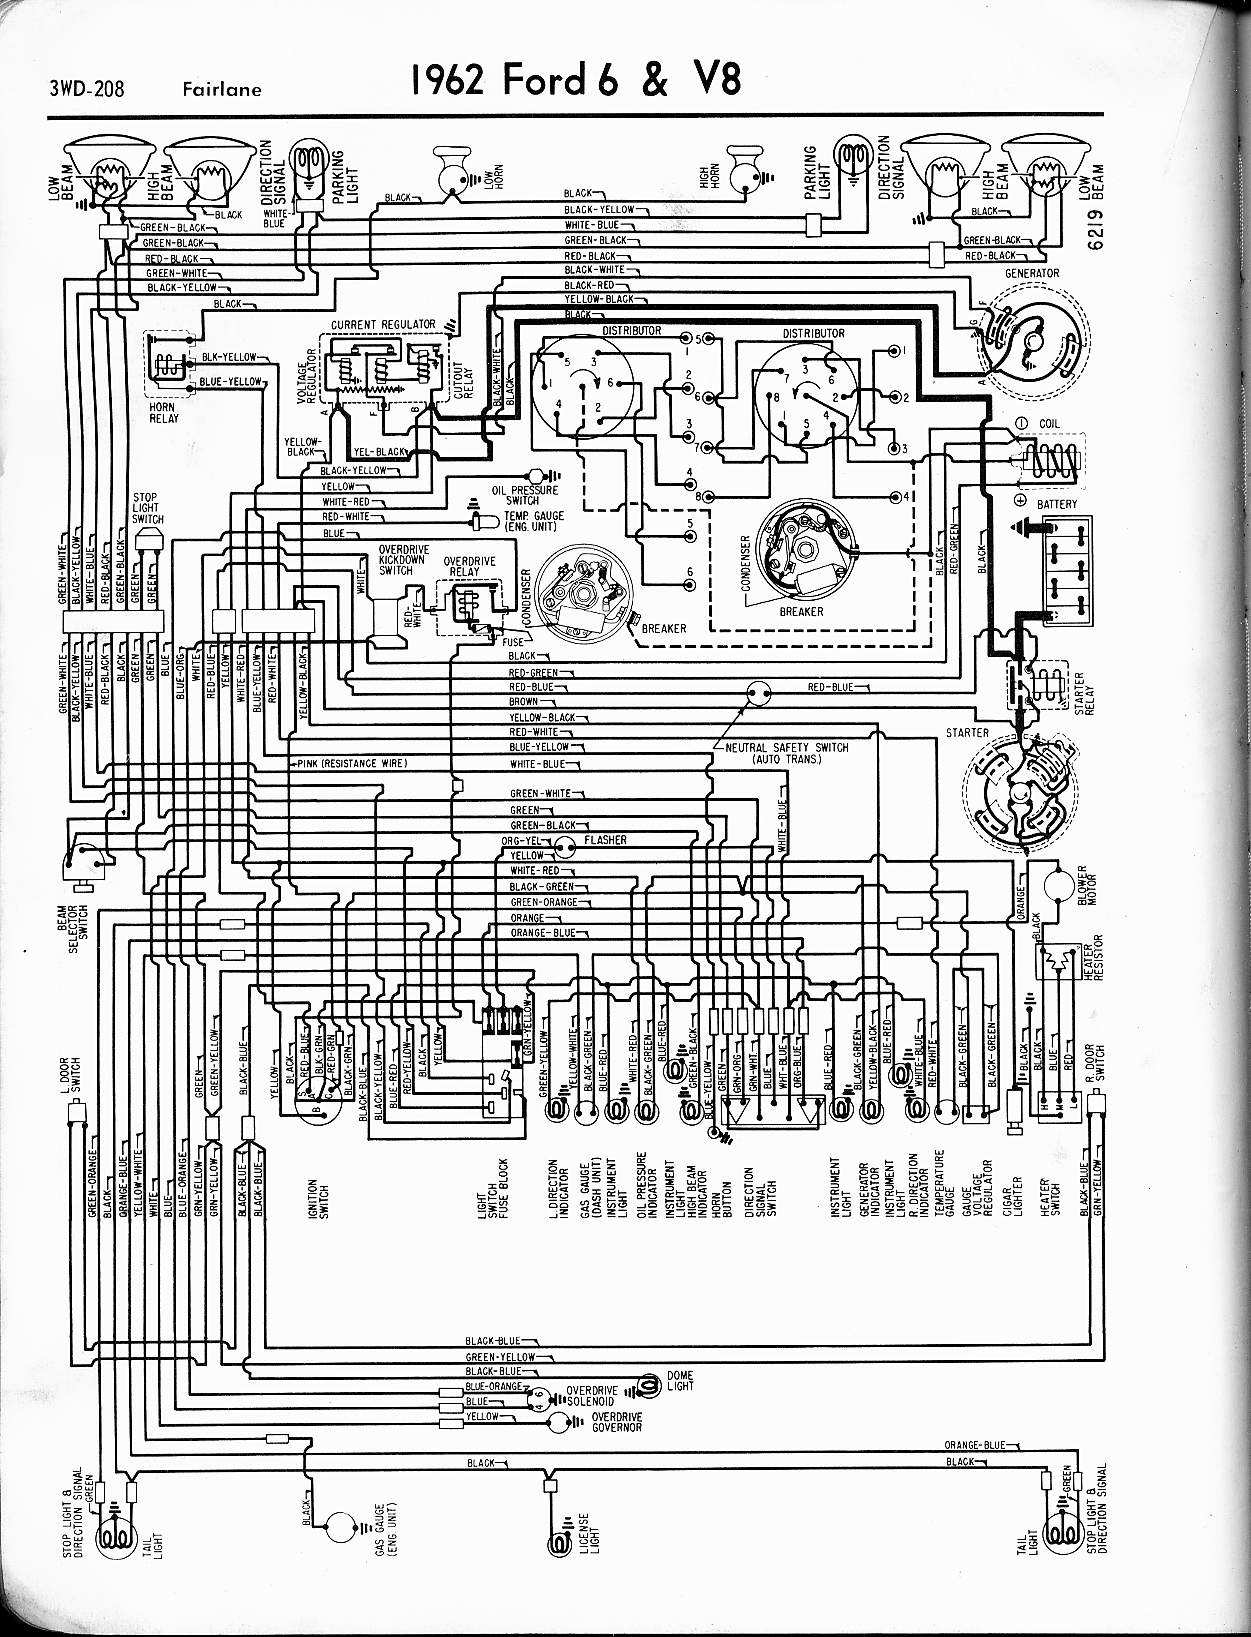 wiring diagrams of 1962 ford 6 and v8 fairlane wiring diagrams recent 65 Fairlane 2 Door Wagon